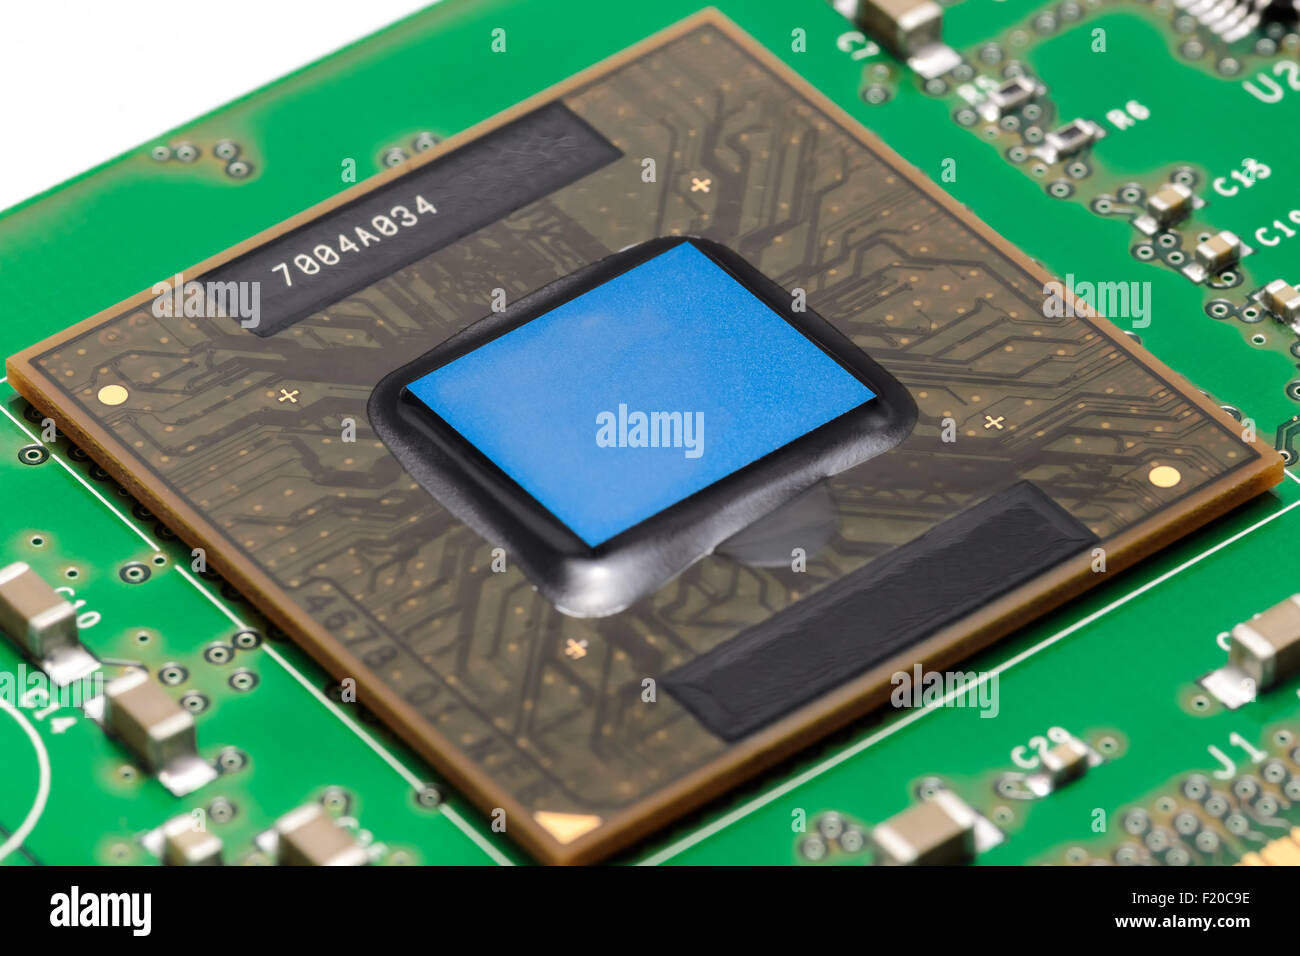 Old Processor Stock Photos Images Alamy Electronics Circuit Board Royalty Free Photo Image On Printed